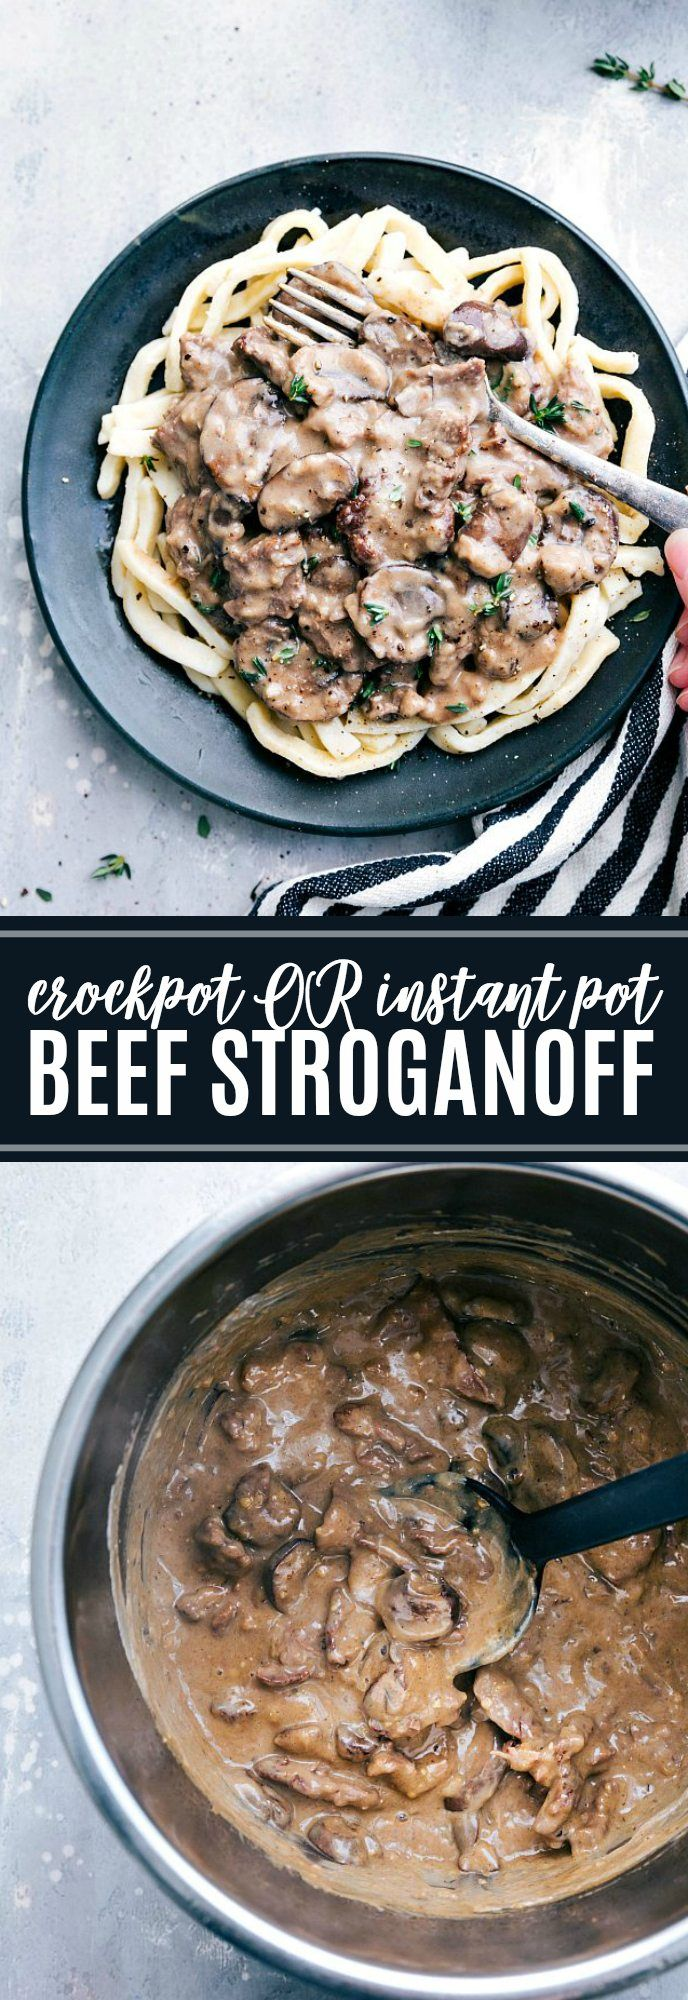 Insanely good BEEF STROGANOFF made in the instant pot OR crockpot. Delicious and easy! via chelseasmessyapron.com | #instantpot #crockpot #slowcooker #beef #stroganoff #delicious #kidfriendly #dinner #quick #30minutes #beef #chuckroast #creamcheese #best #ever